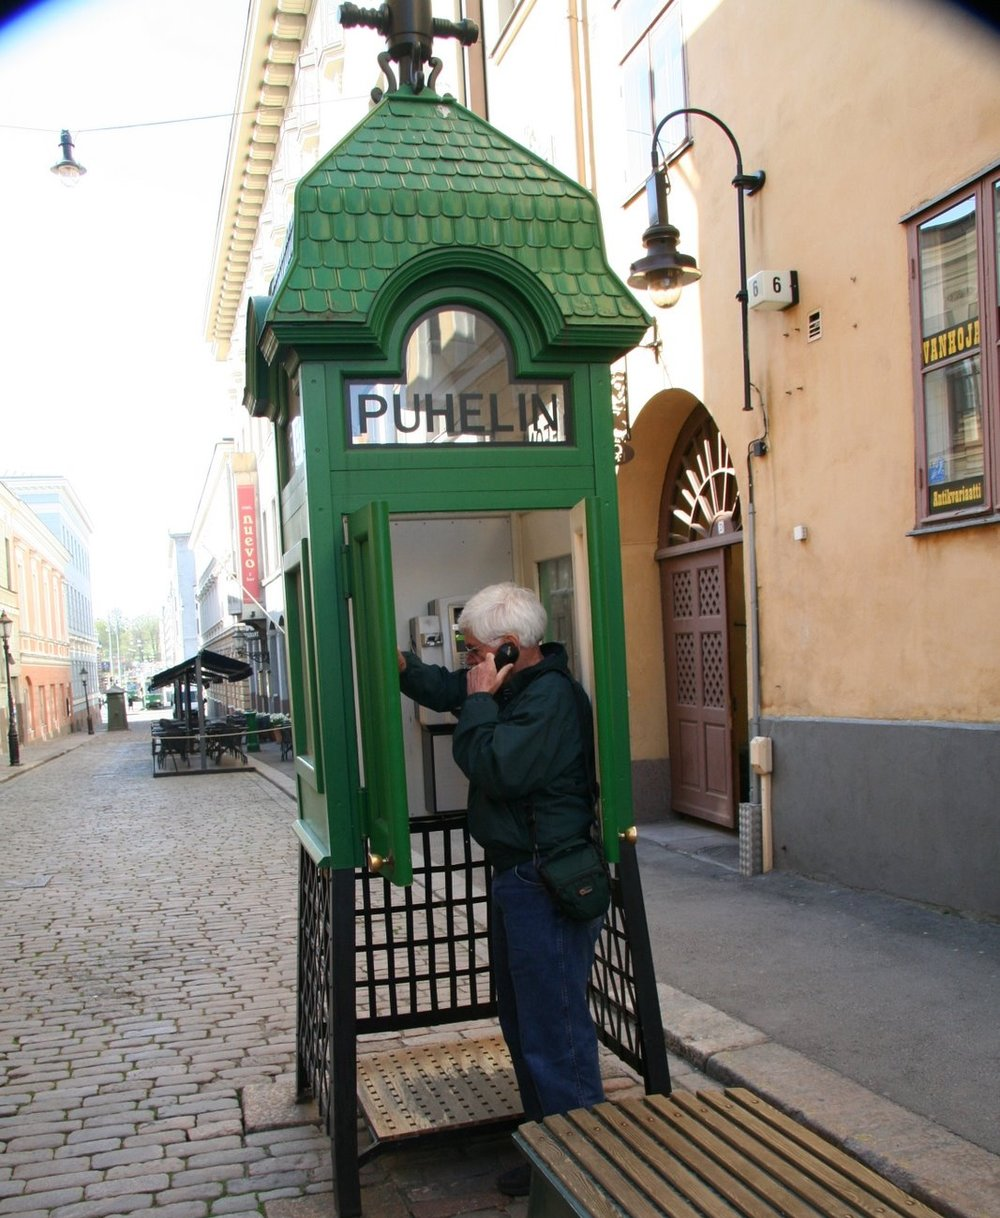 Jim doing one more deal in an operating antique phone booth